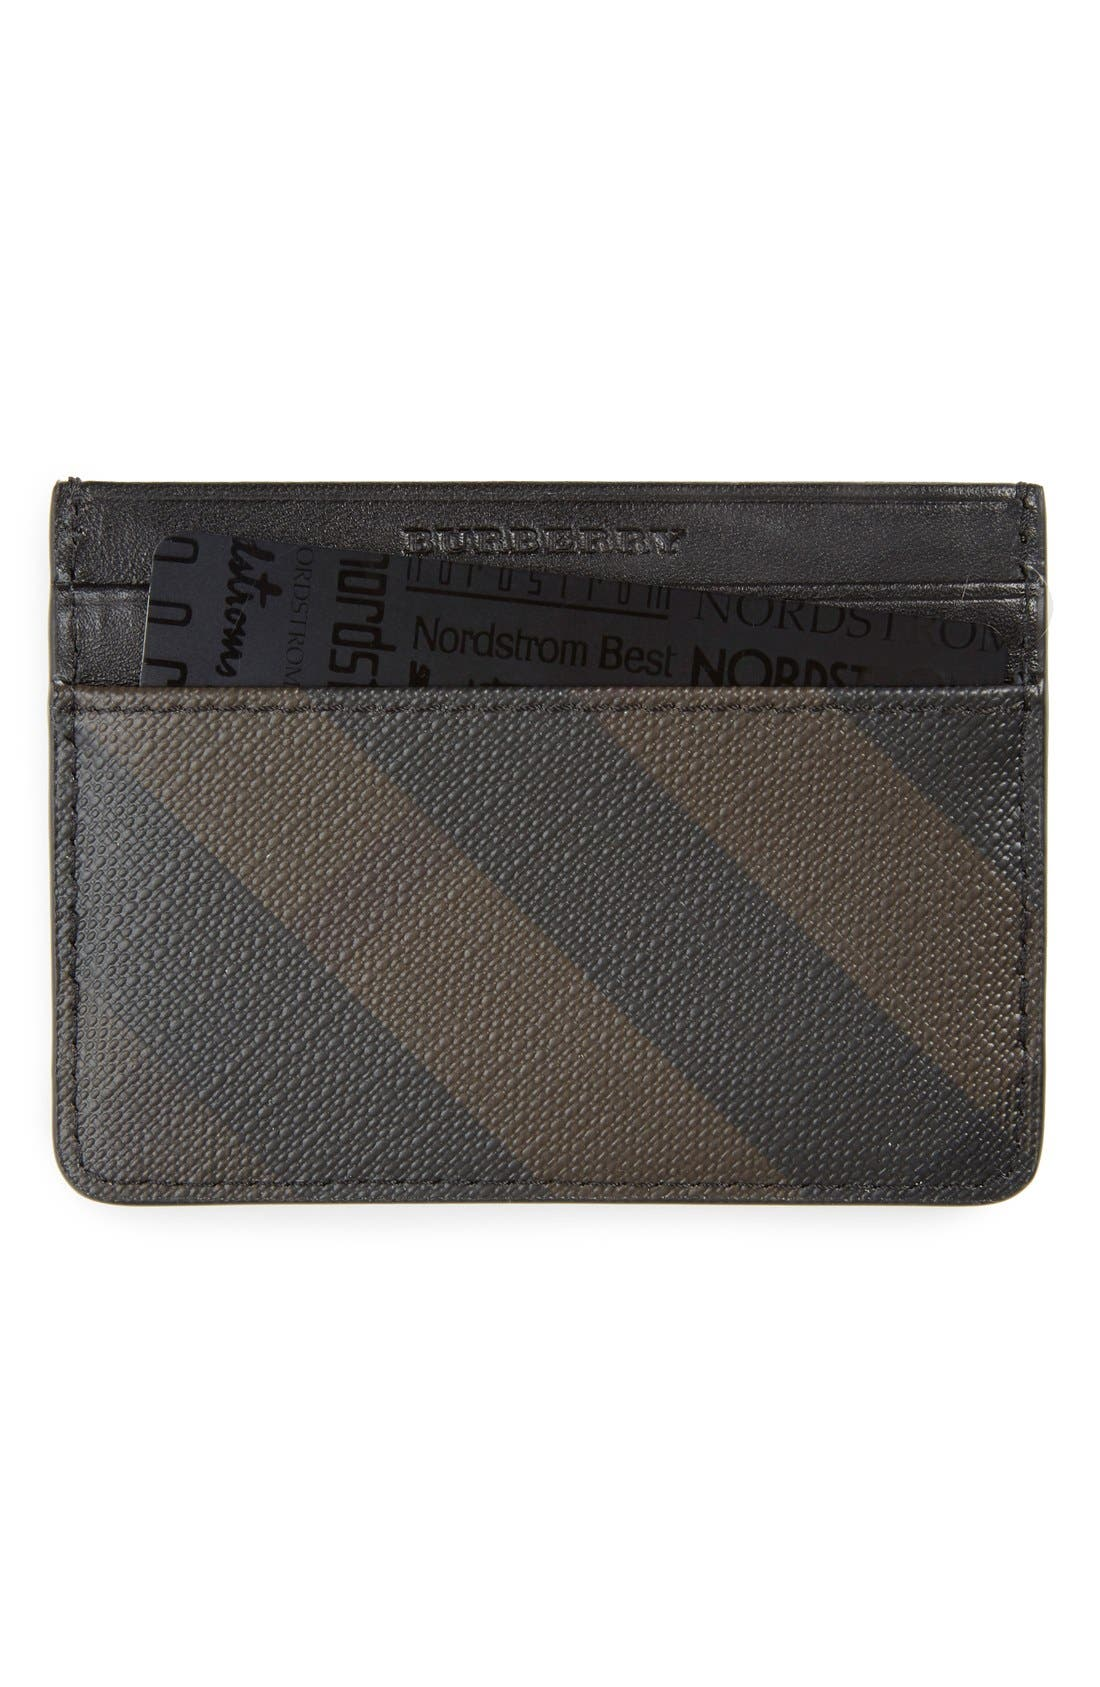 'New London' Check Card Case,                         Main,                         color, 207